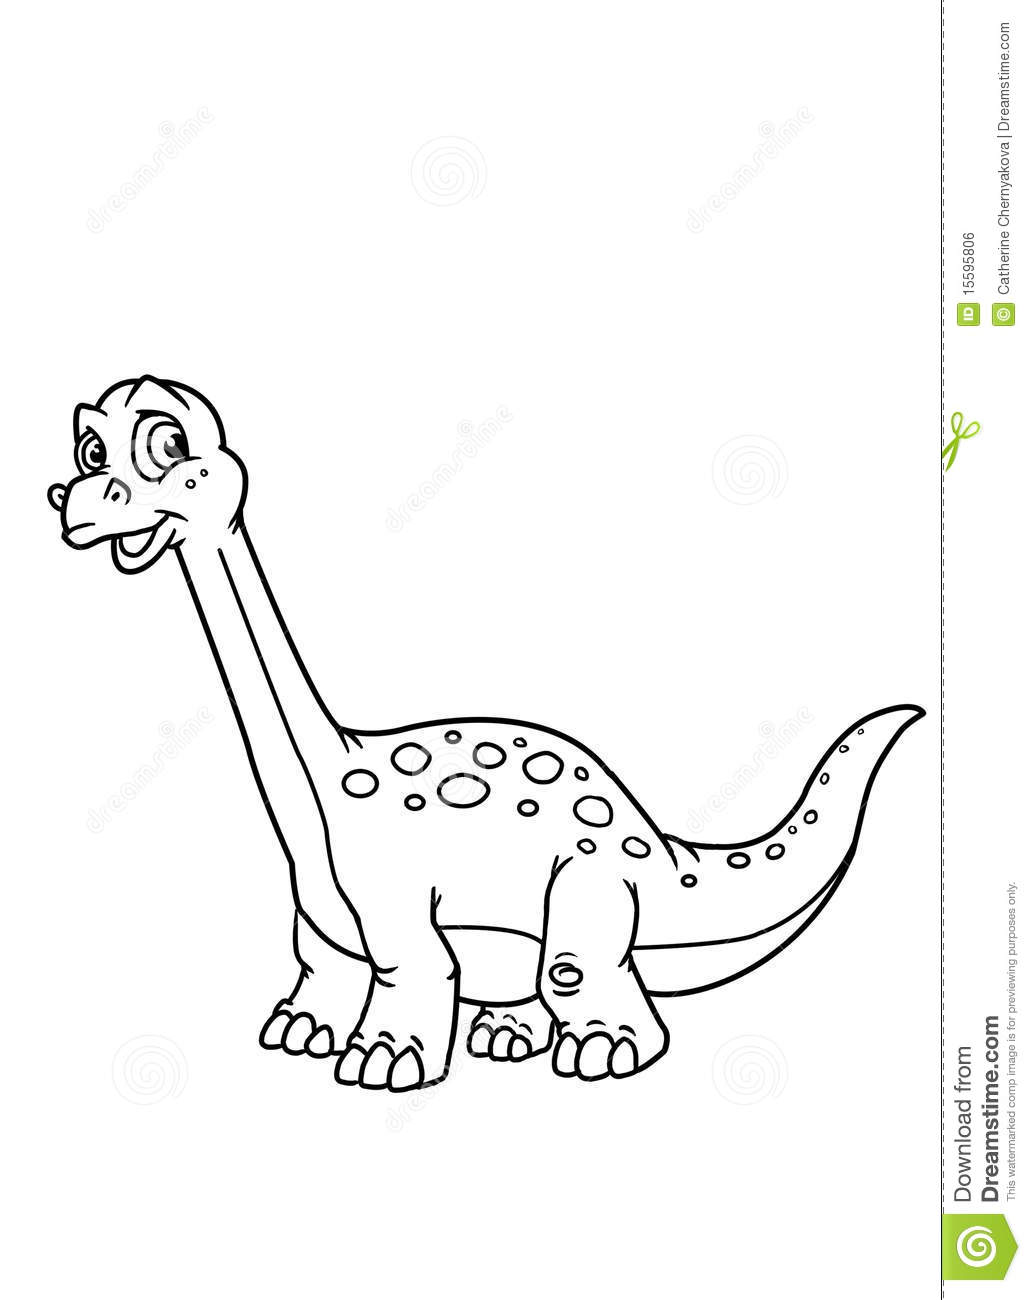 coloring pages dinosaur royalty free stock image image 15595806